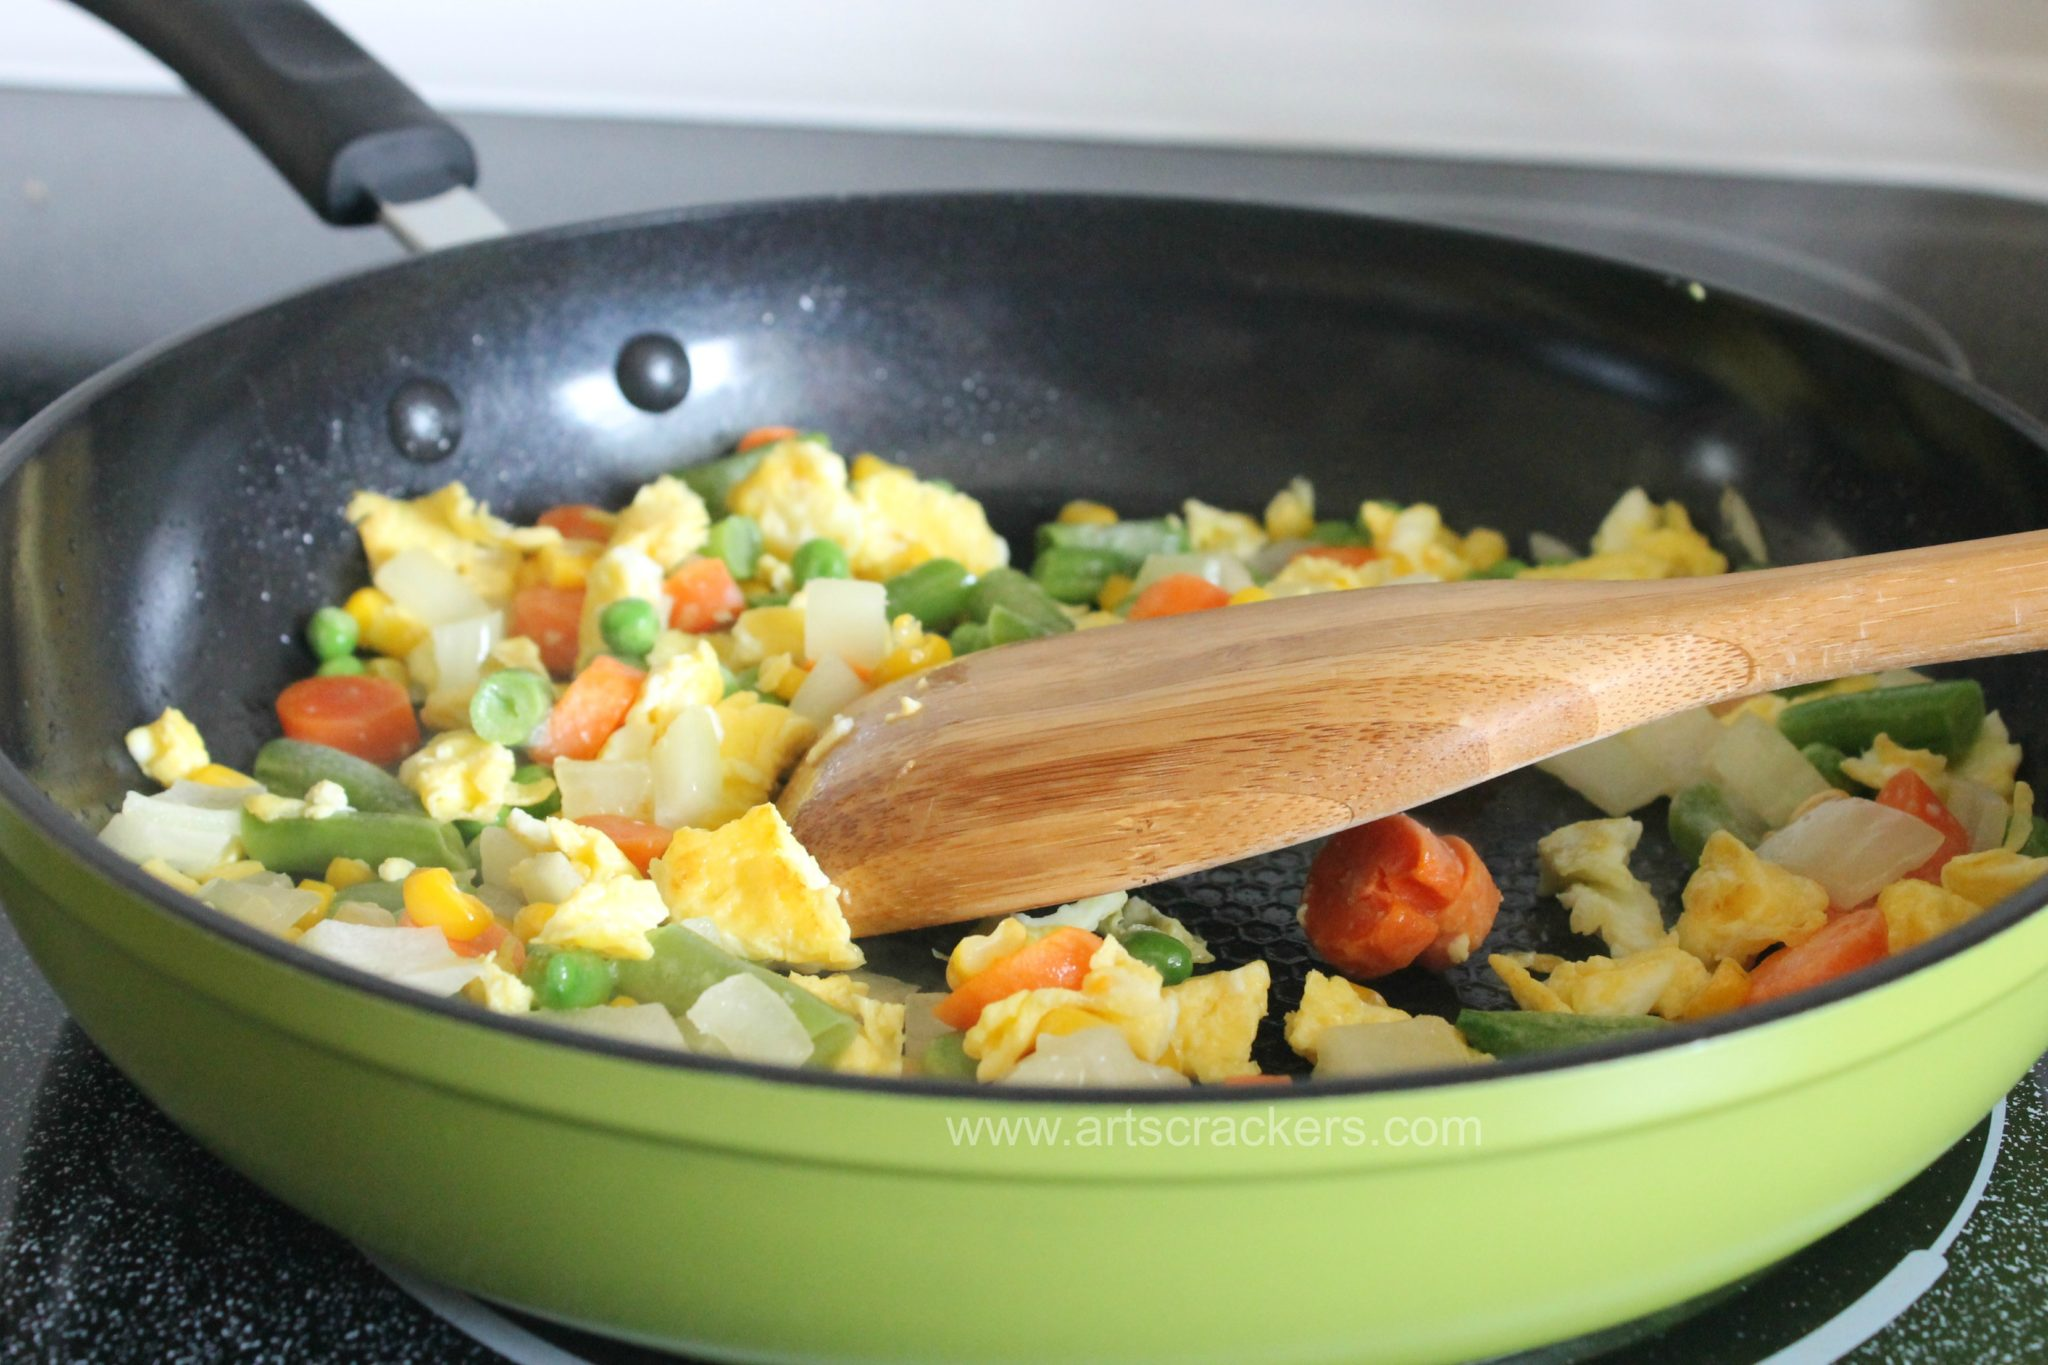 Fried Rice Vegetables and Egg